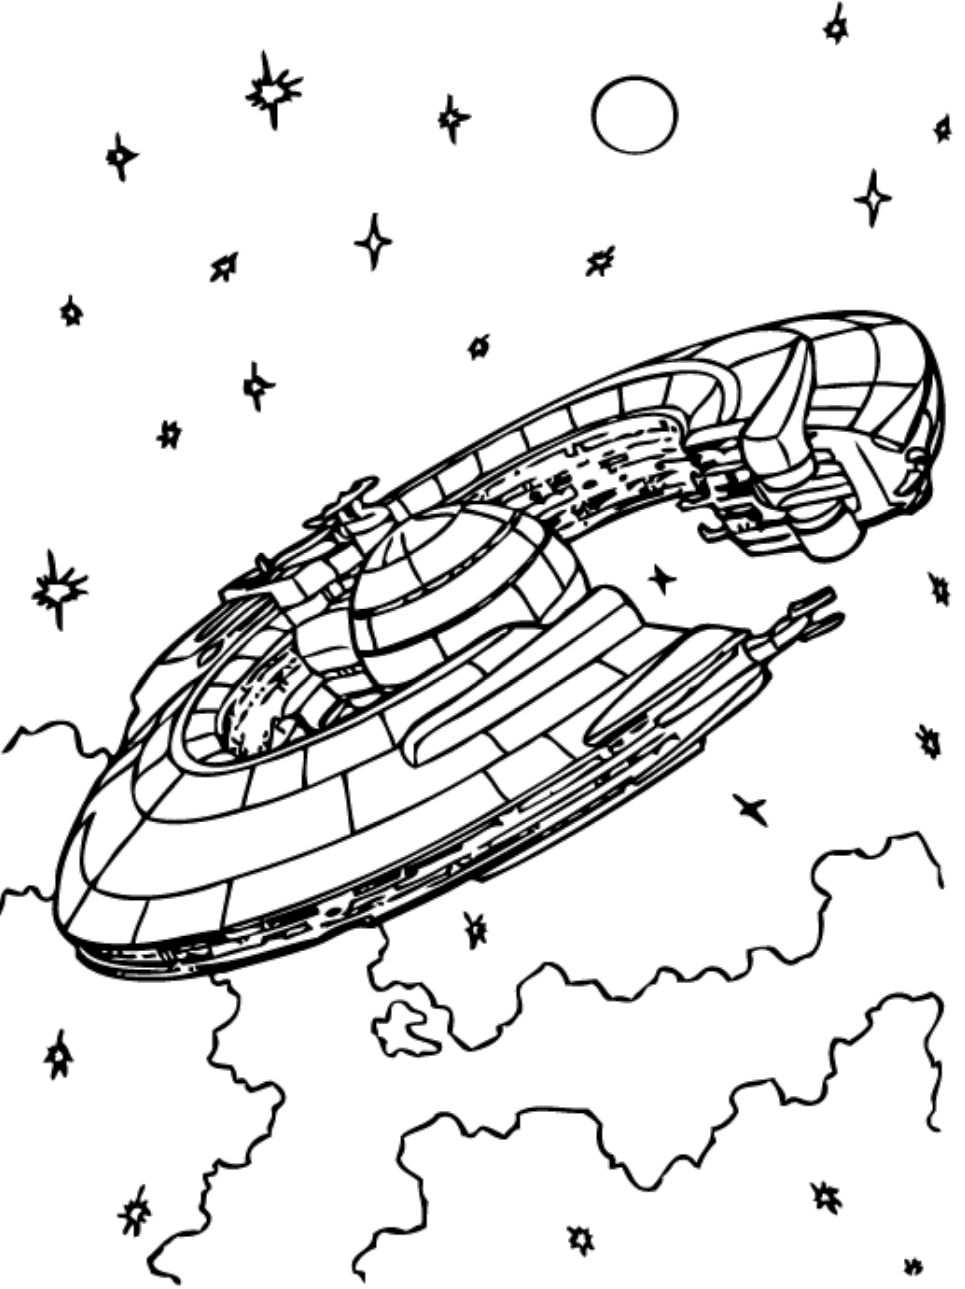 X Wing Starfighter Coloring Page - Free Printable Coloring Pages for Kids